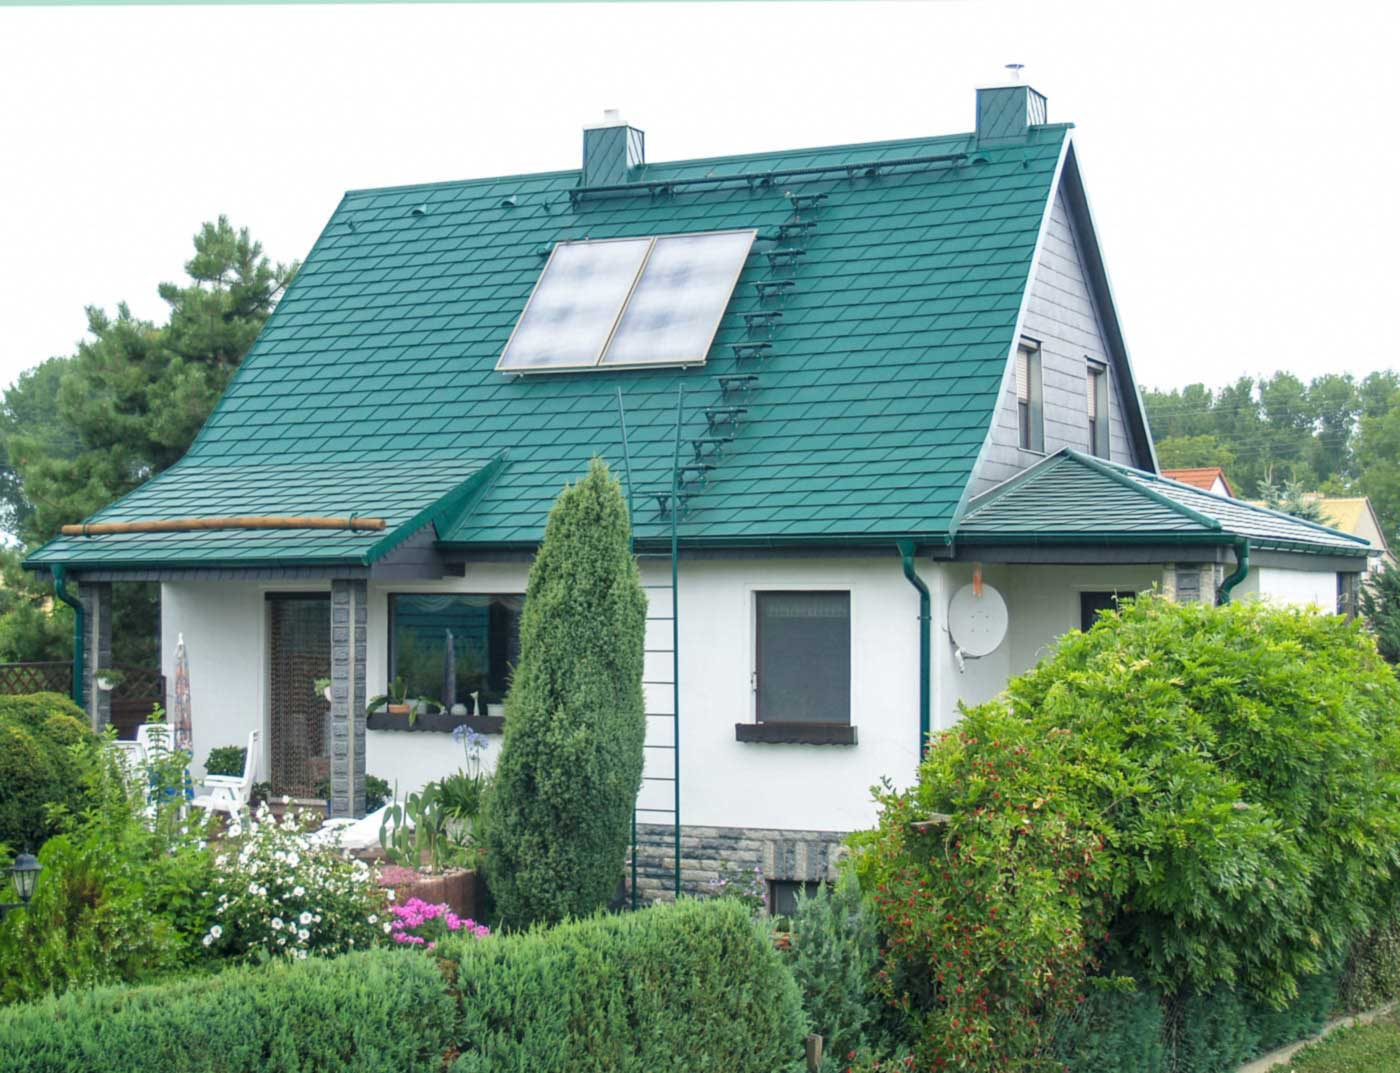 Reference buildings PREFA Roof systems Shingle 06 moss green (similar to RAL 6005)